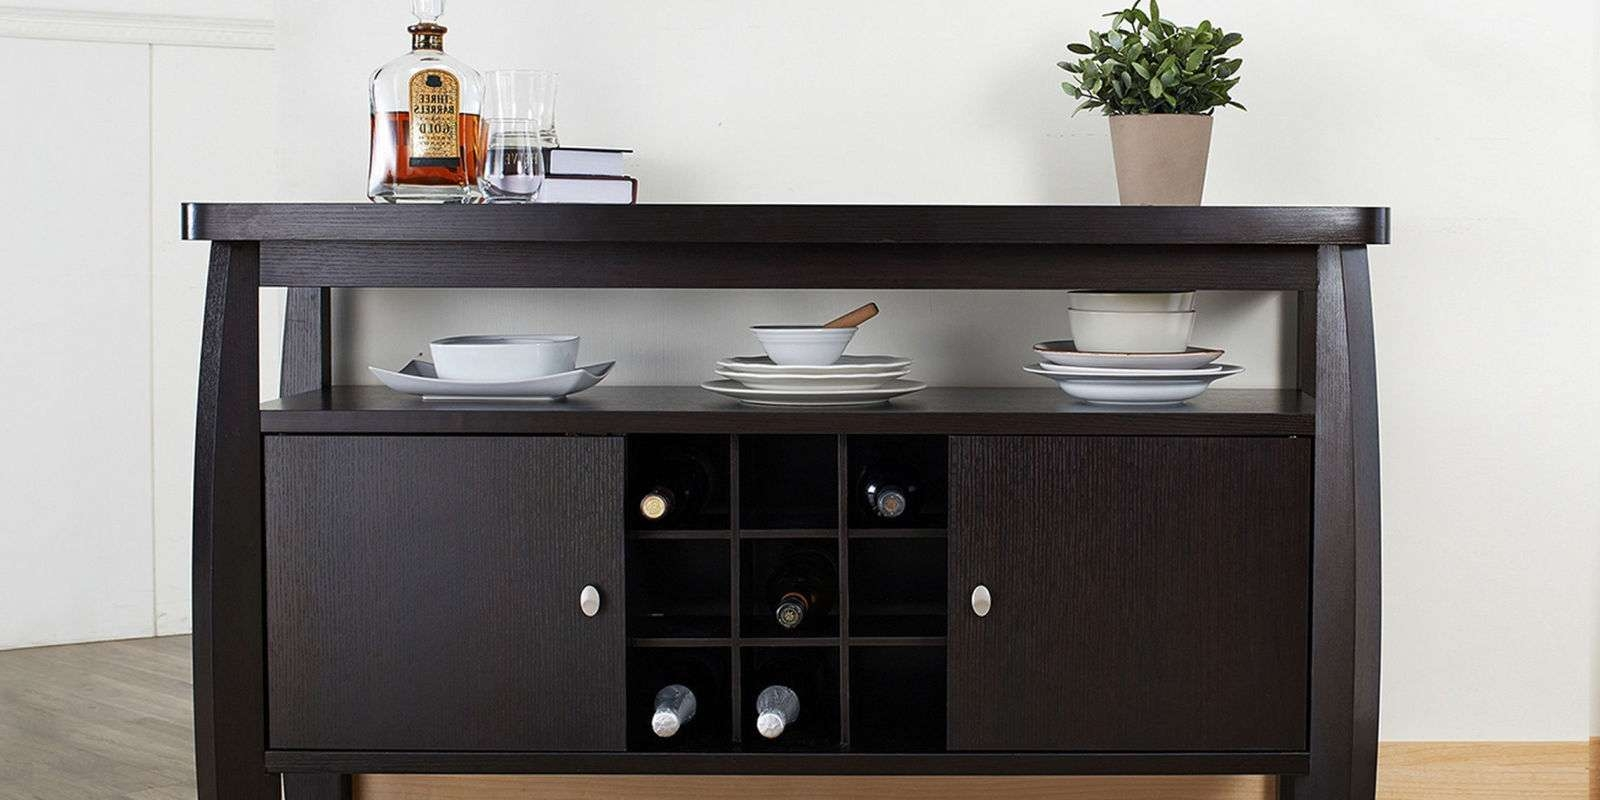 11 Best Sideboards And Buffets In 2018 – Reviews Of Sideboards Pertaining To Espresso Sideboards (View 2 of 20)